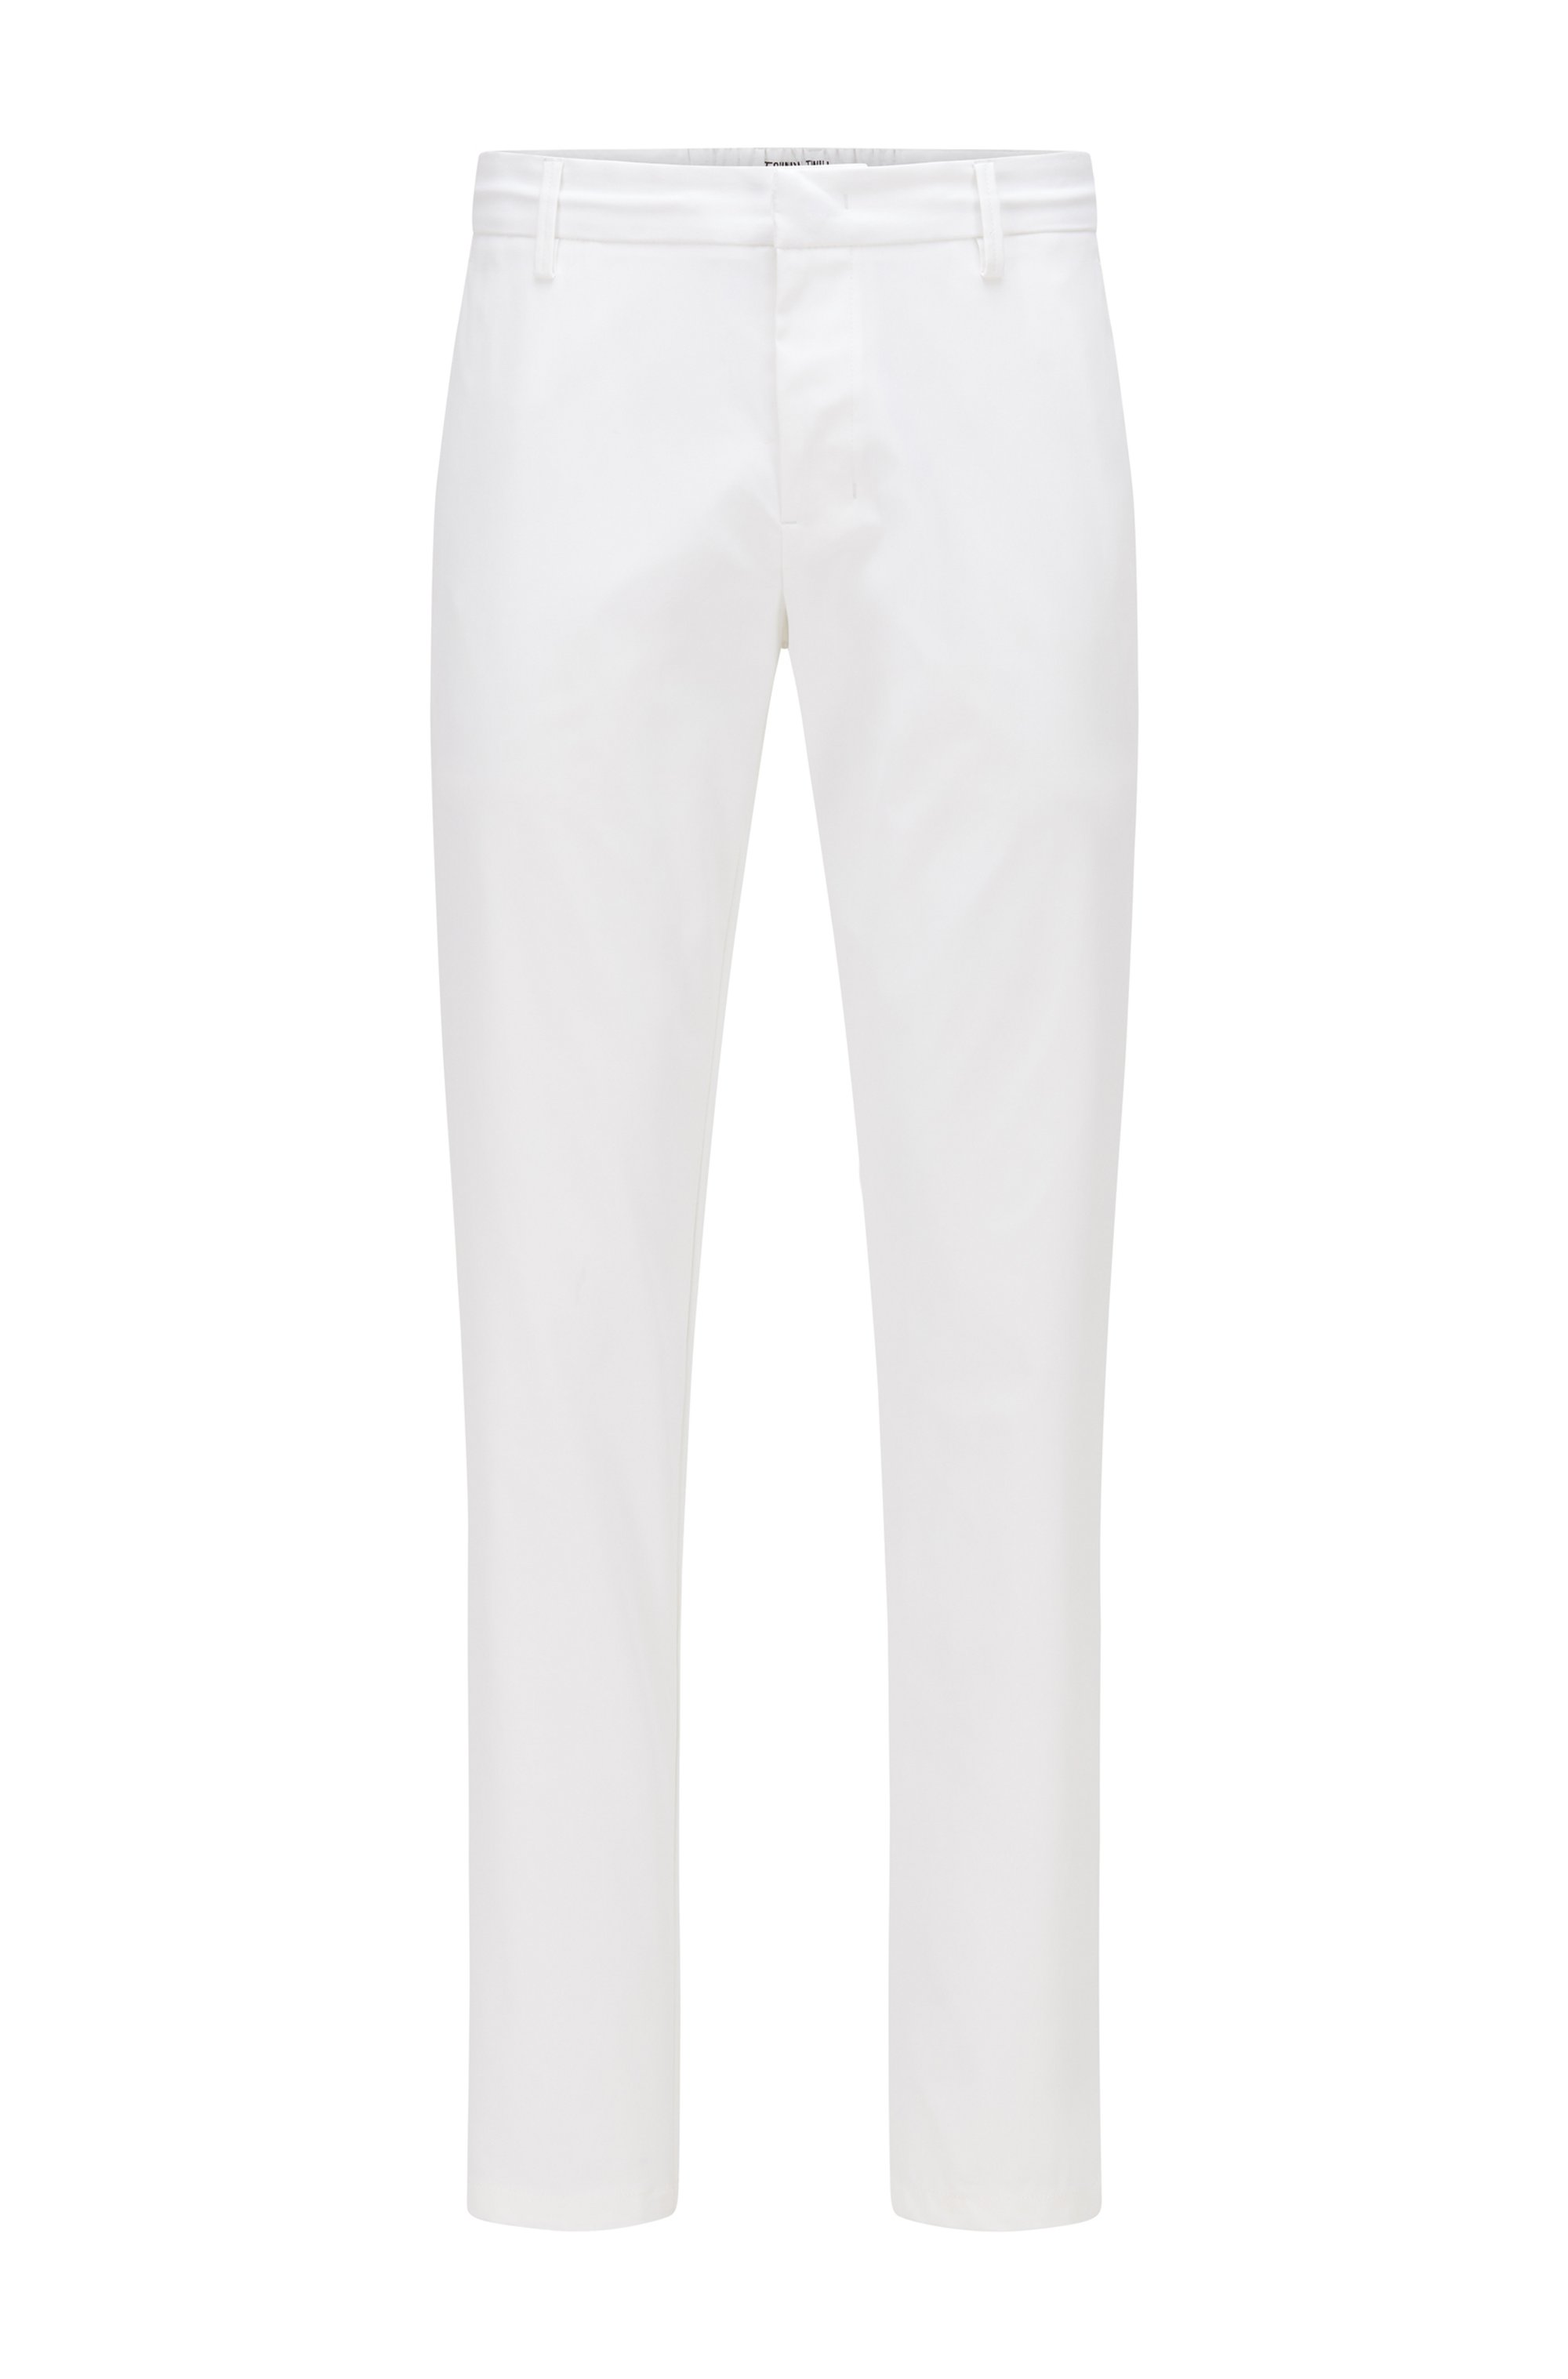 Pantaloni slim fit in twill tecnico idrorepellente, Bianco